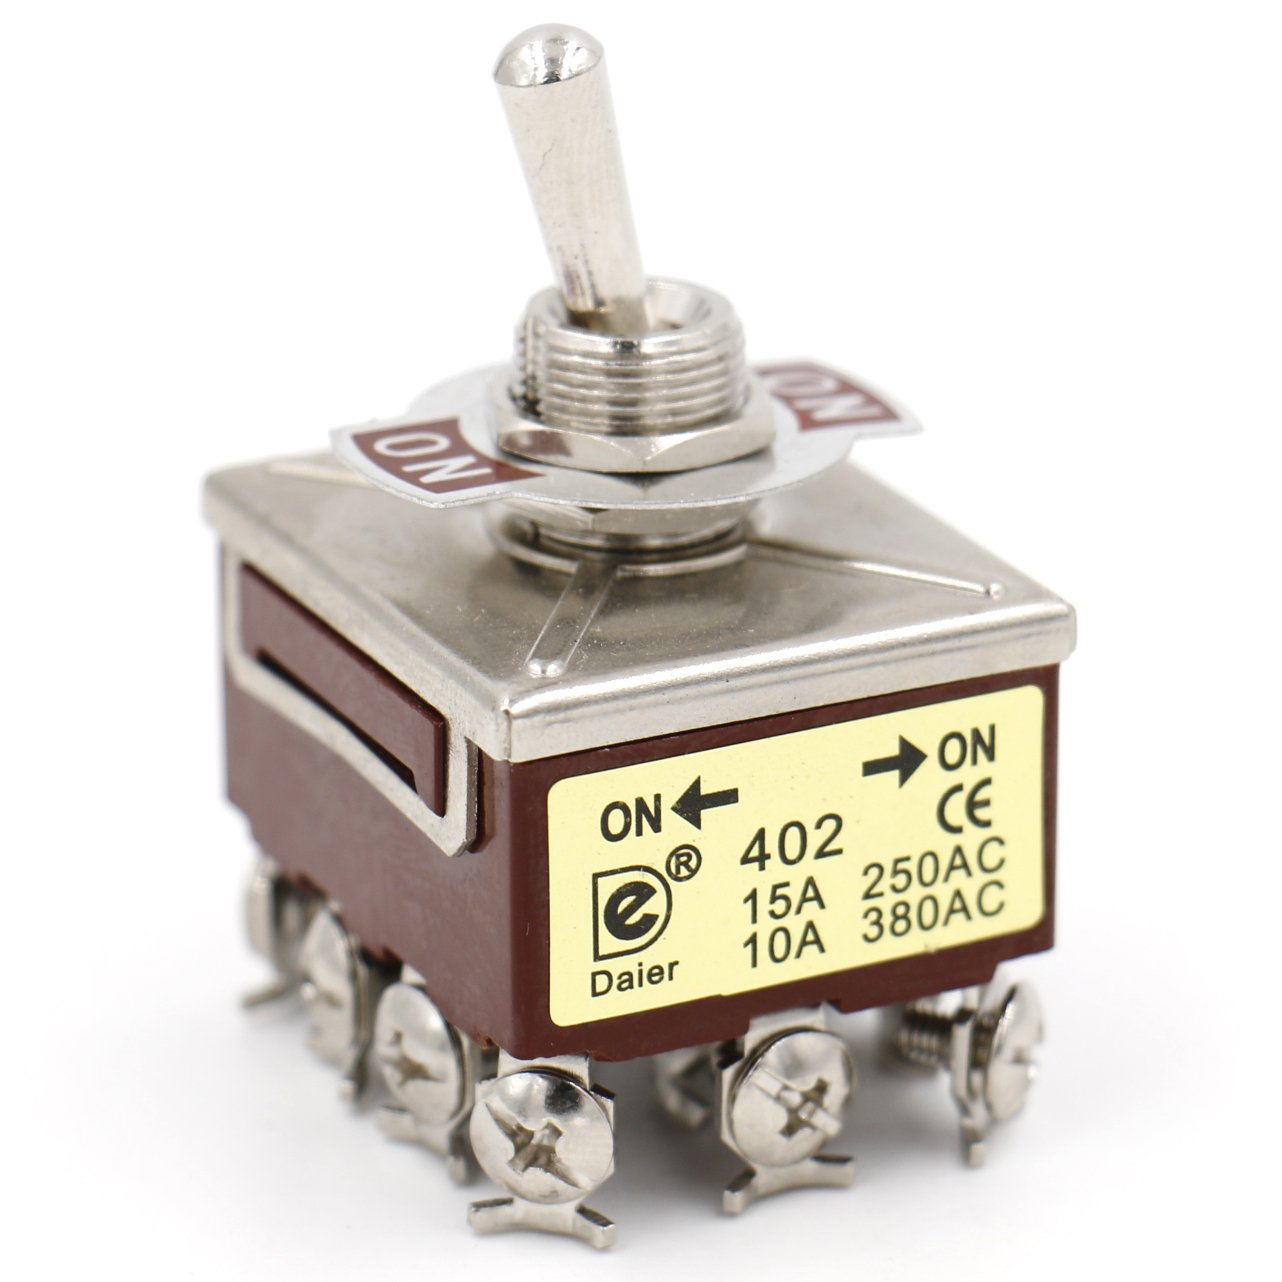 Heschen metal toggle switch 4PDT maintained ON/ON 2 position 15A 250VAC 10A 380VAC CE Heschen Electric Co.Ltd